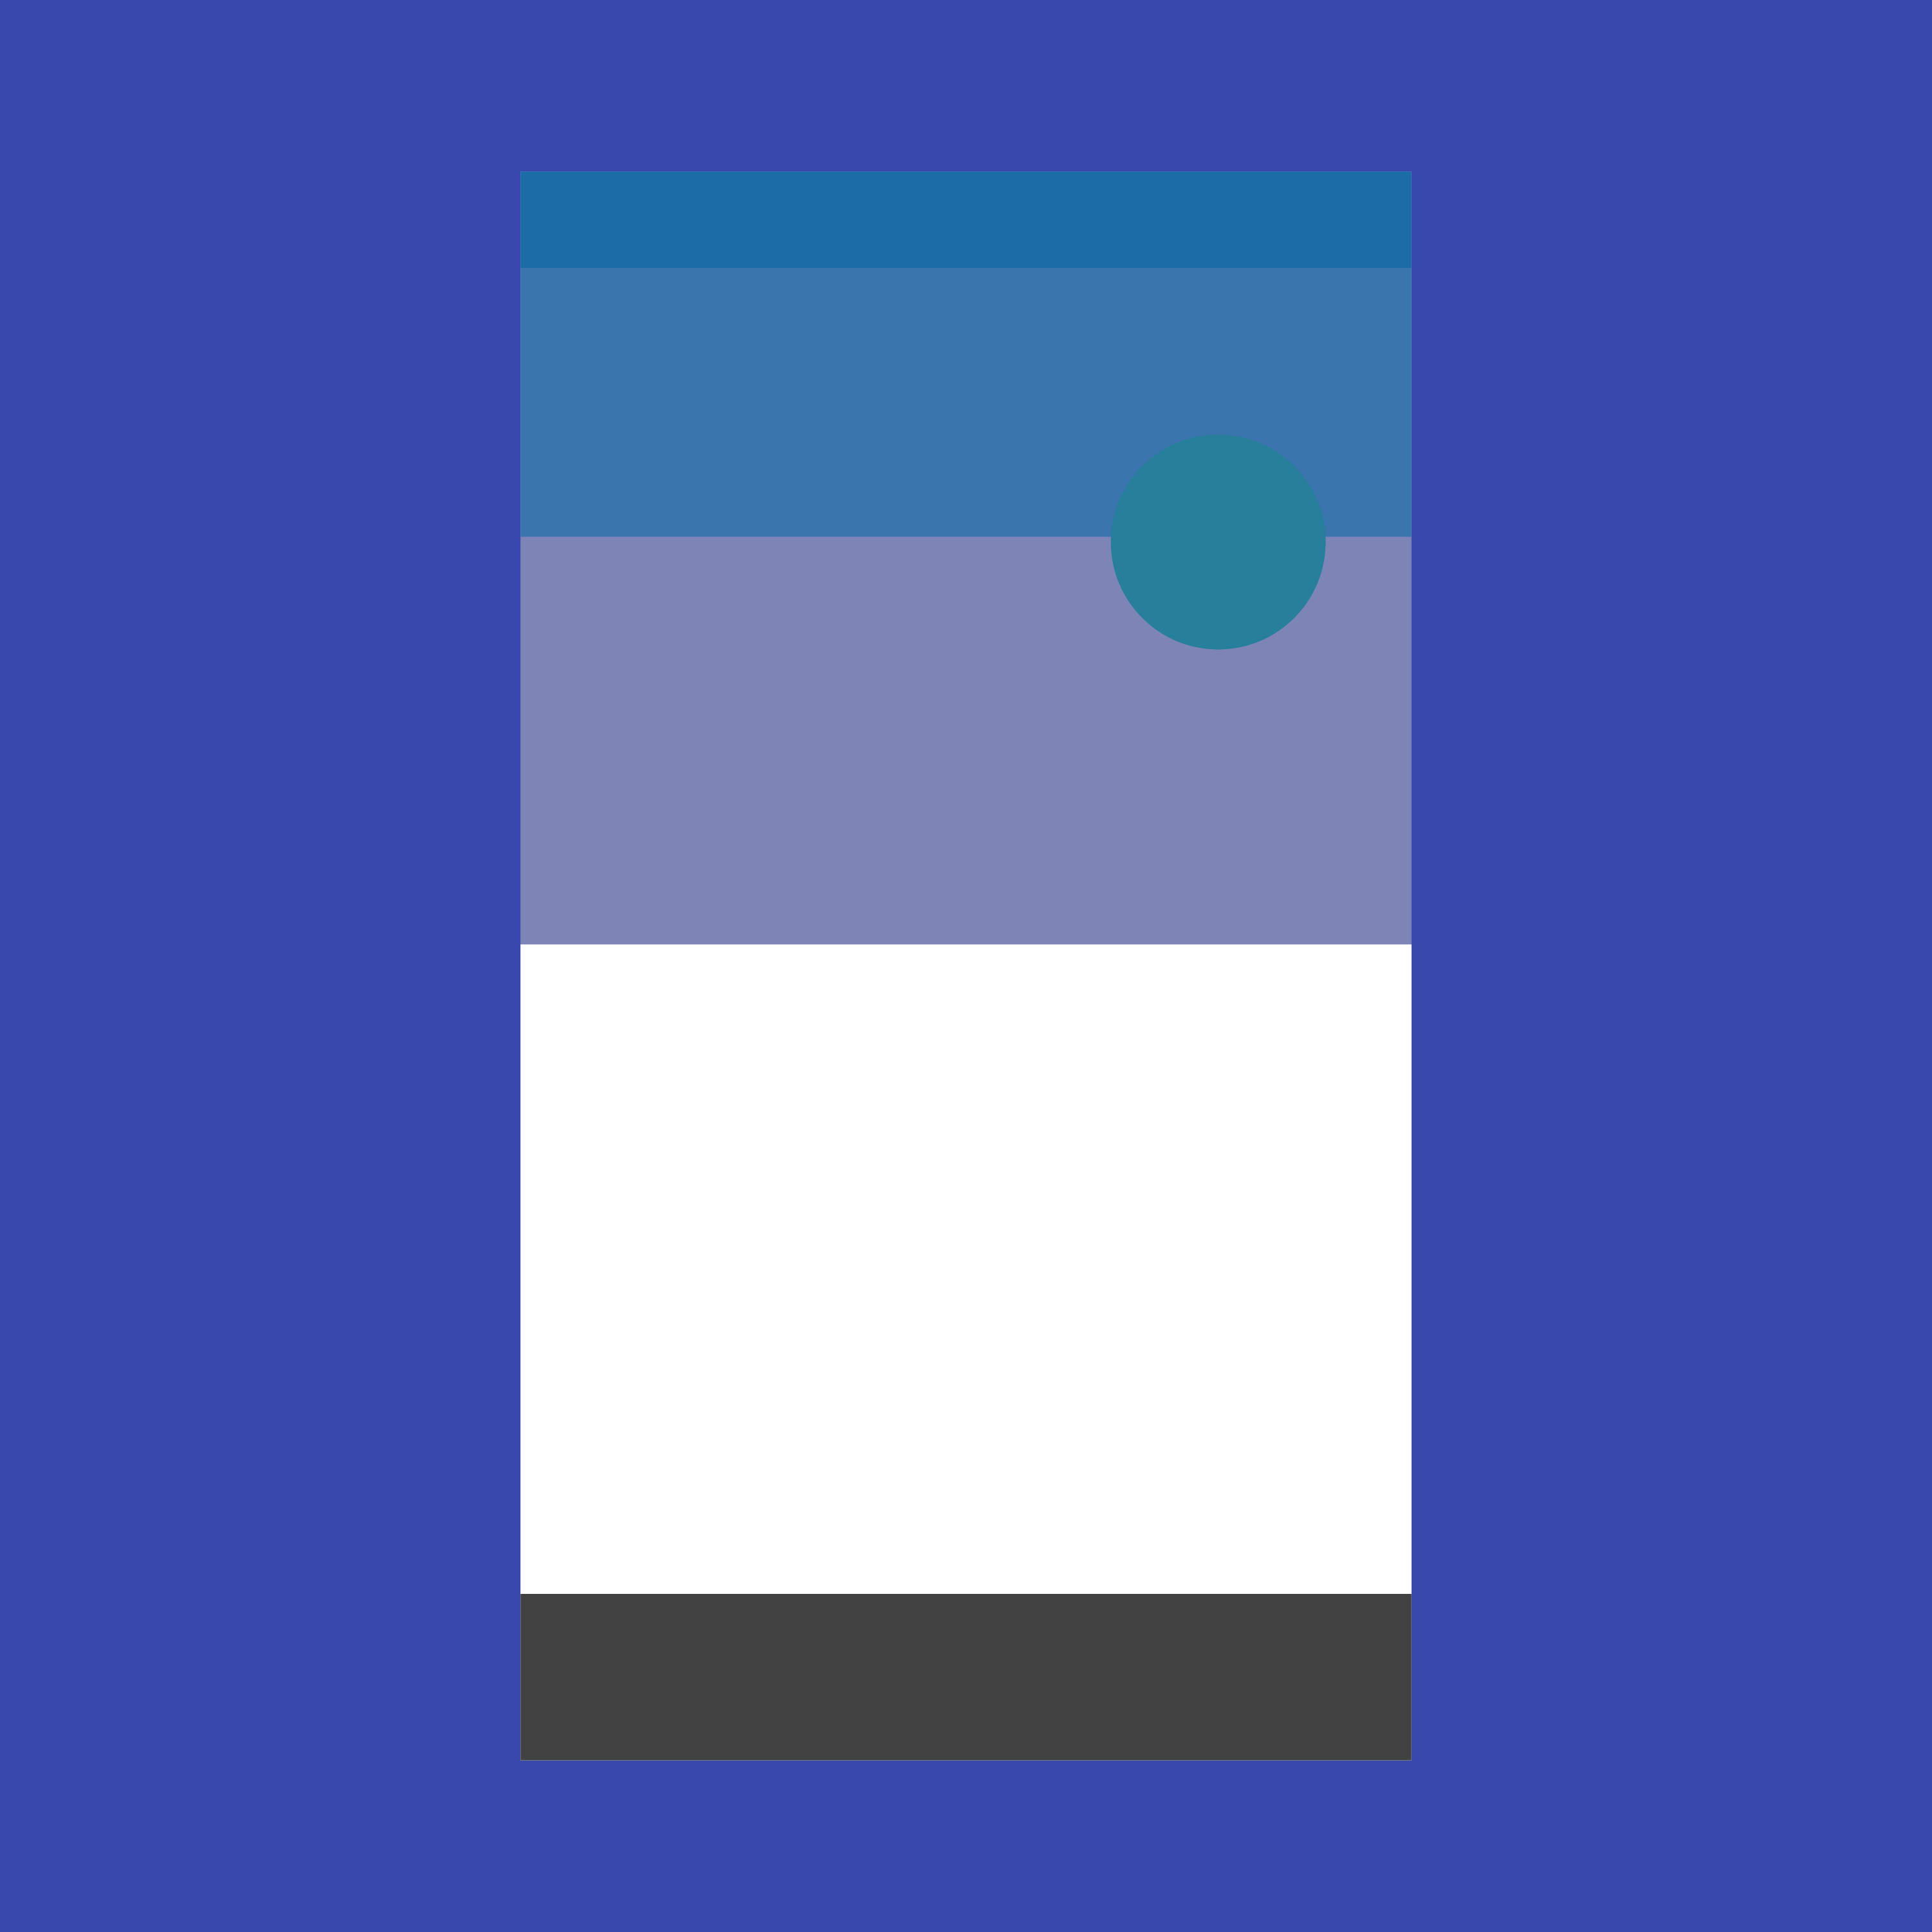 Bottom sheets - Components - Material Design